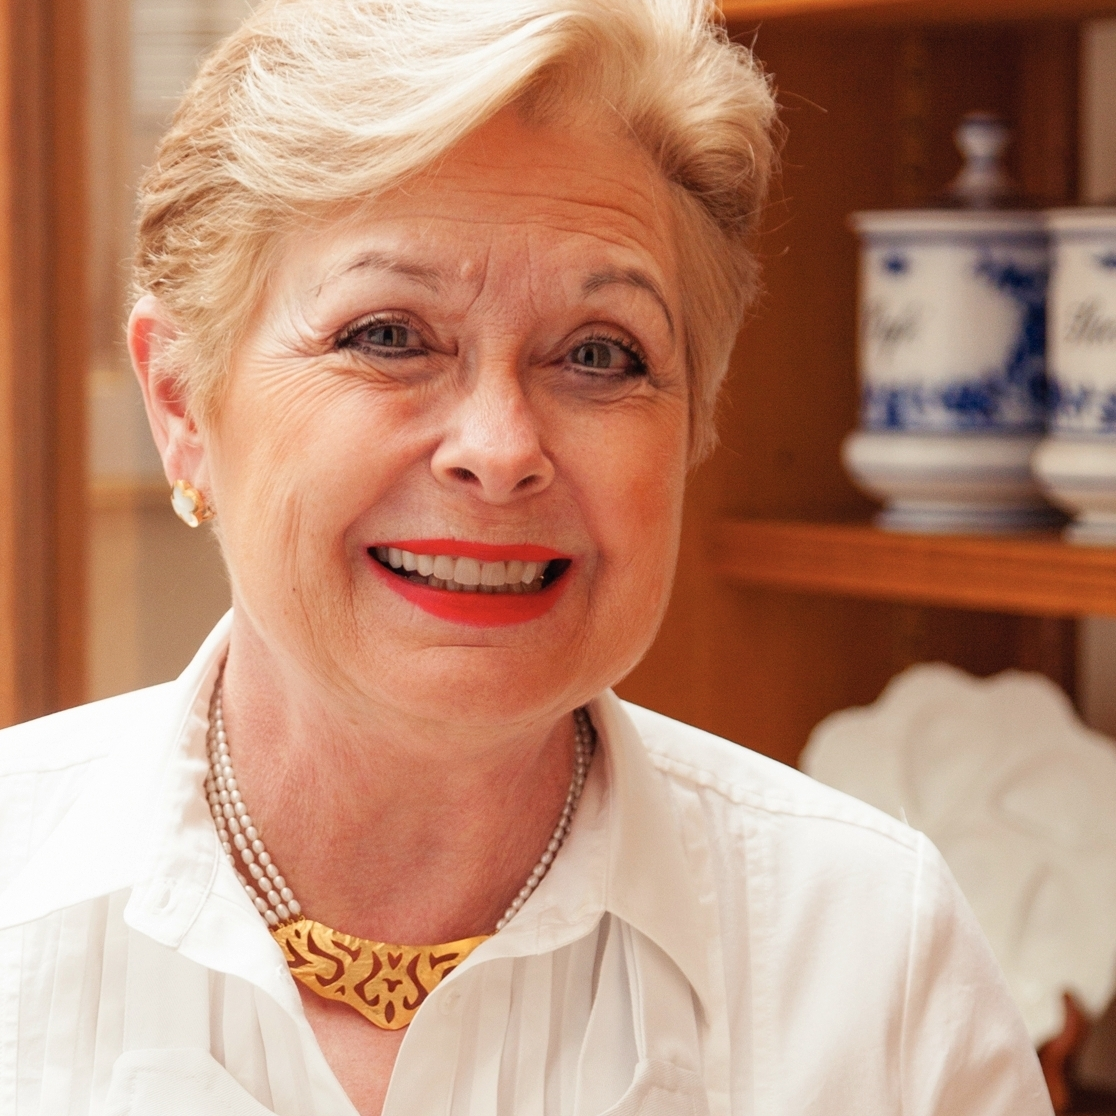 Patricia Wells was a restaurant critic at the International Herald Tribune for 27 years. Her other works include The Food Lover's Guide to Paris, Patricia Wells at Home in Provence and Simply French.